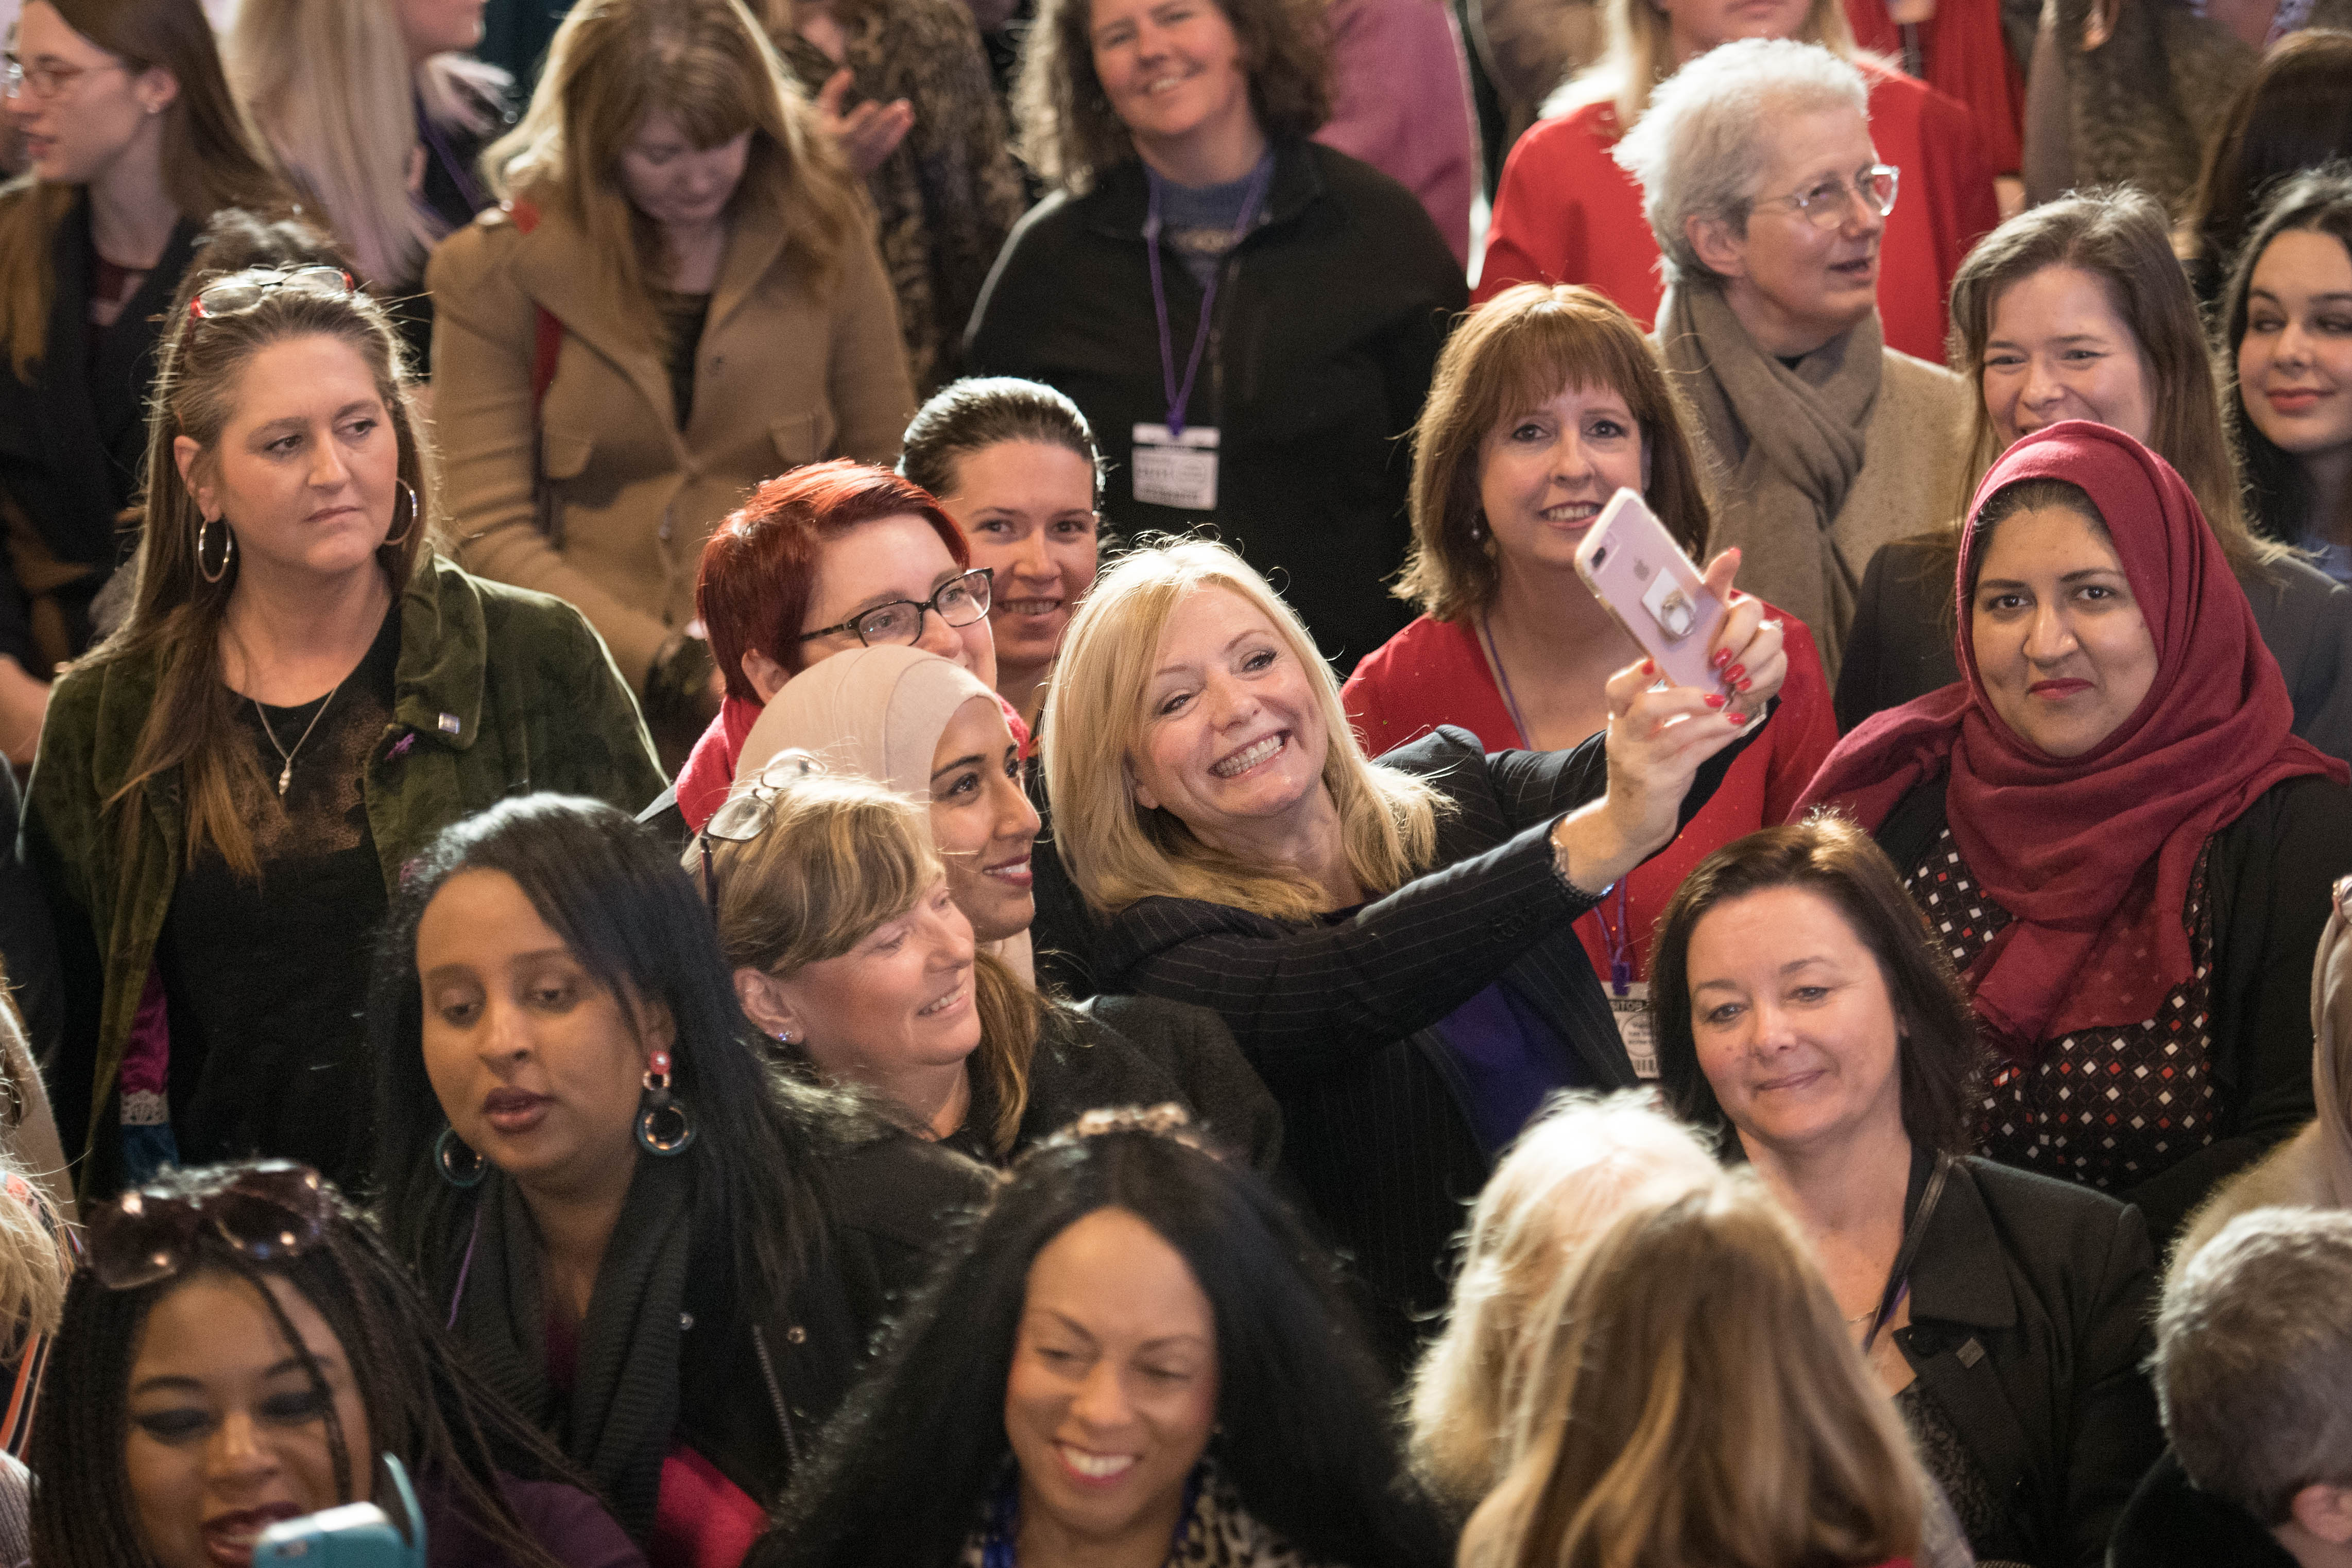 Labour MP Tracy Brabin takes a selfie as MPs from across the political spectrum gather alongside aspiring woman from their constituencies to show them the inner workings of Westminster.